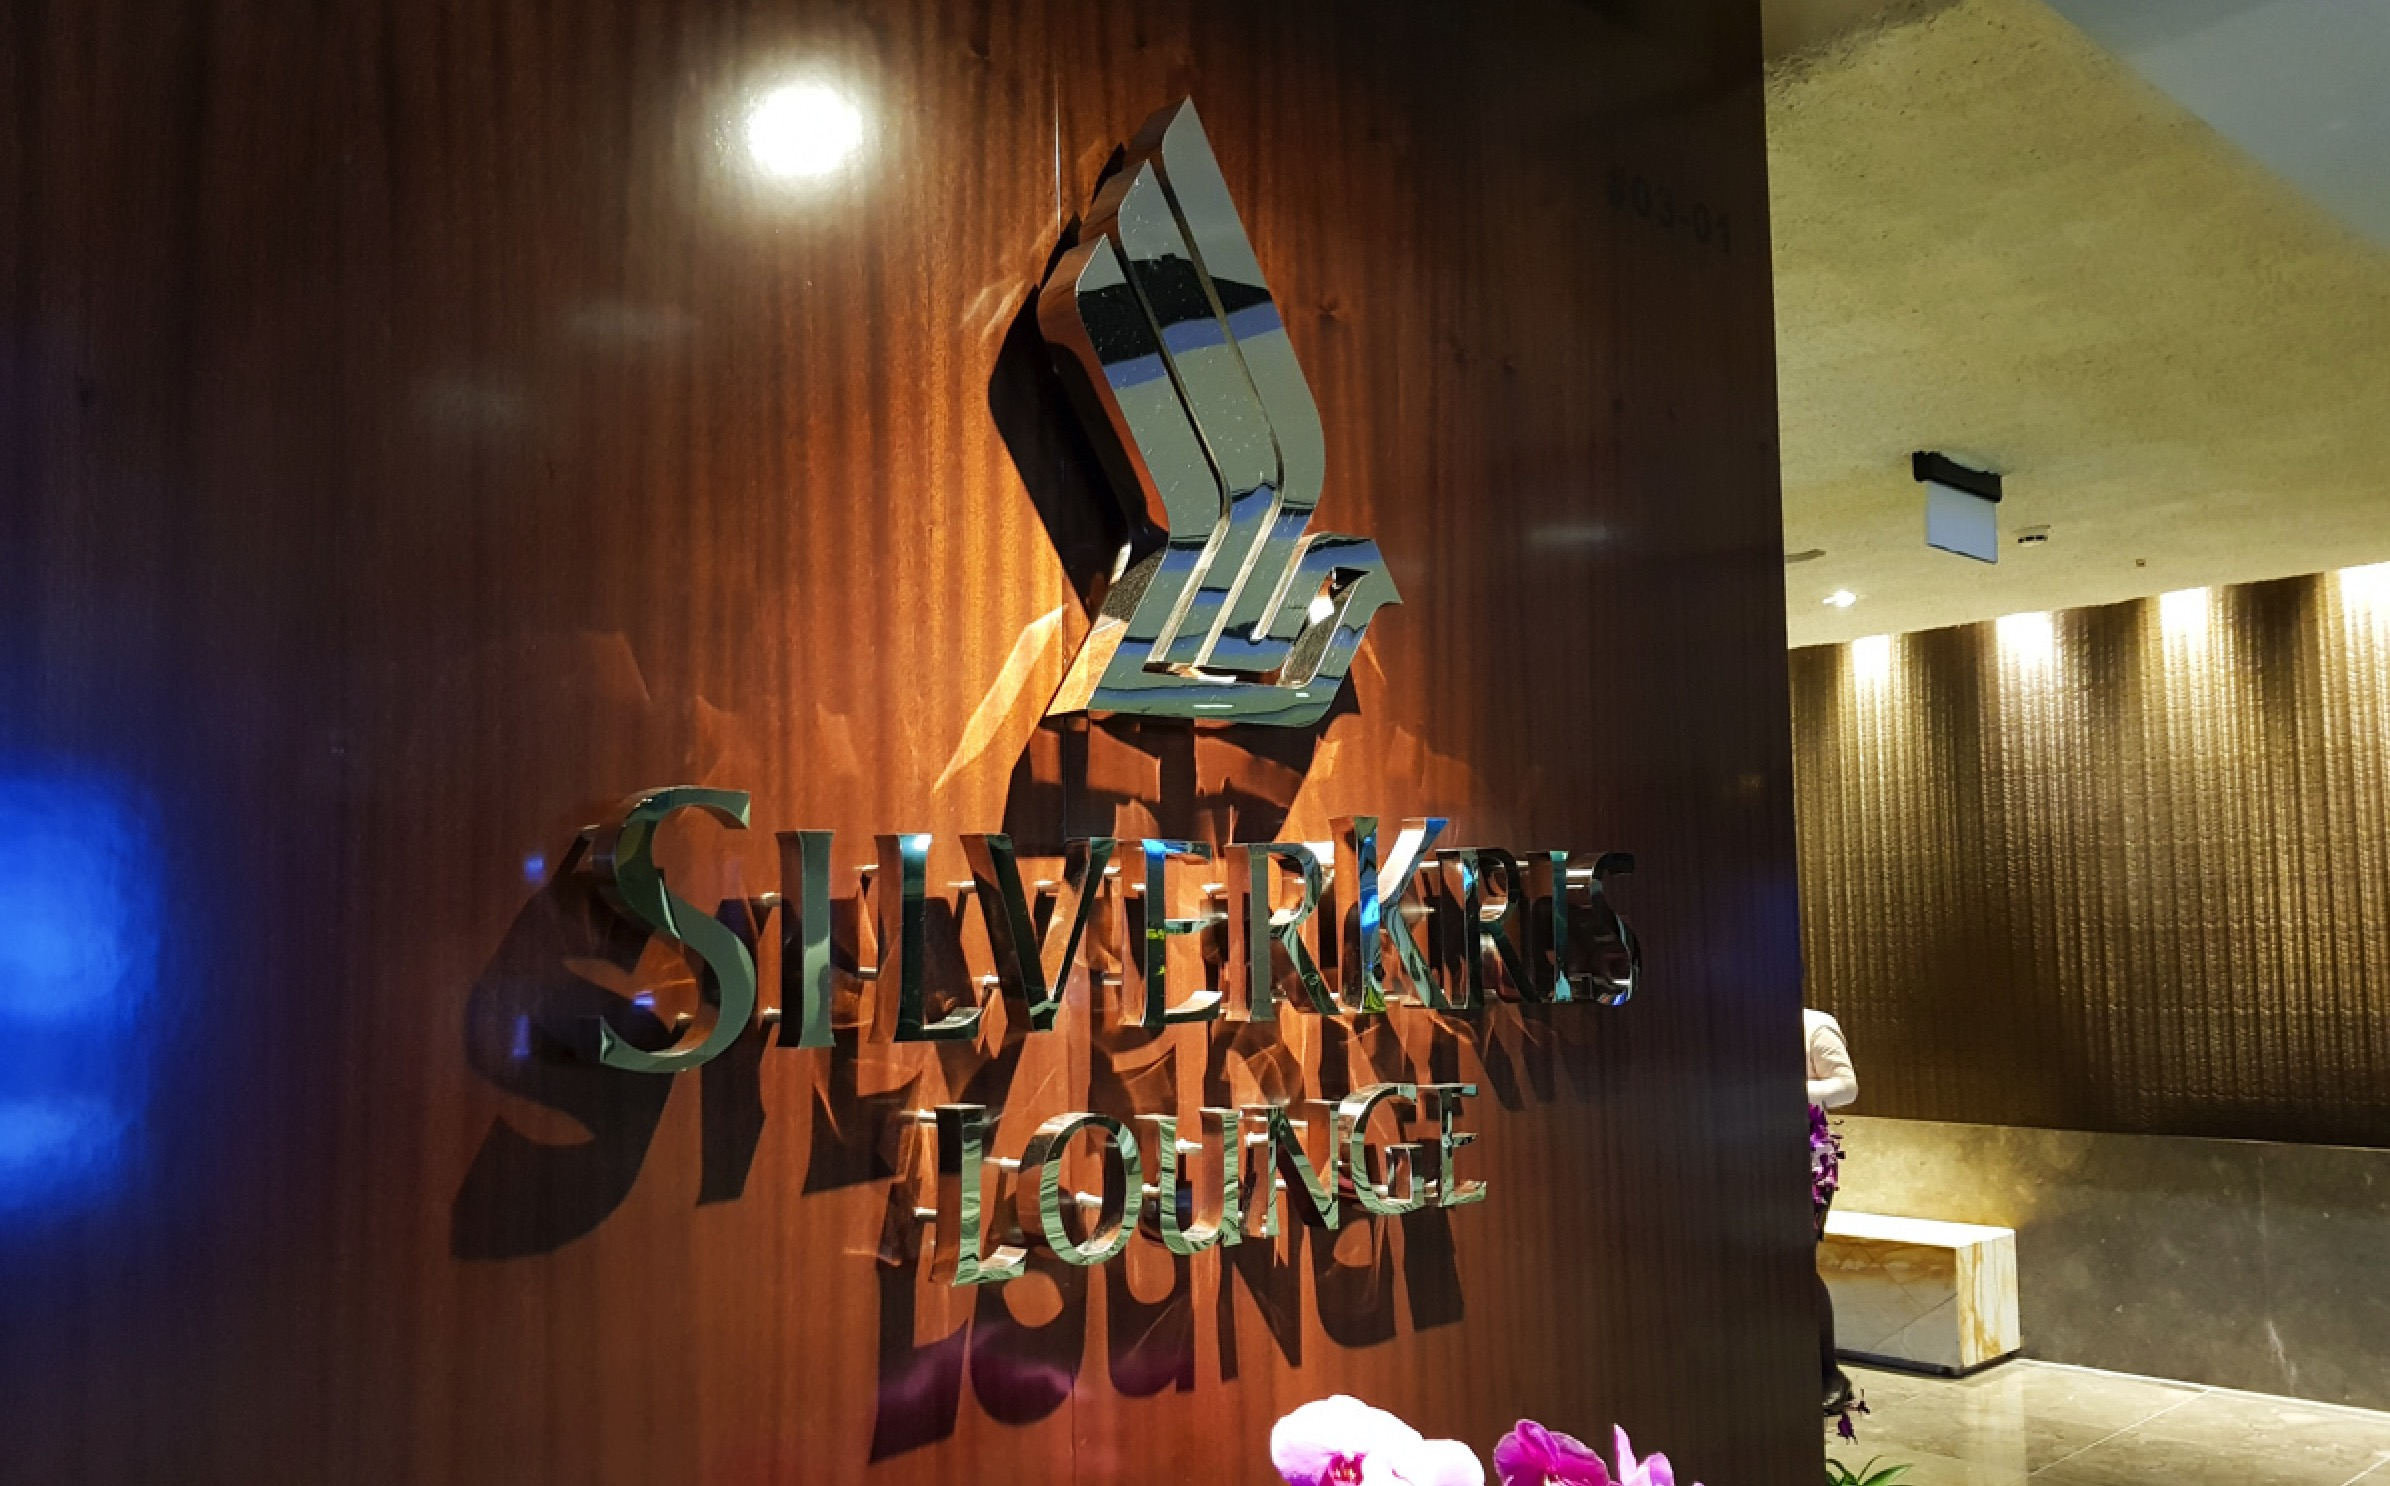 Singapore Airlines SilverKris lounge Changi Terminal 3 | Point Hacks